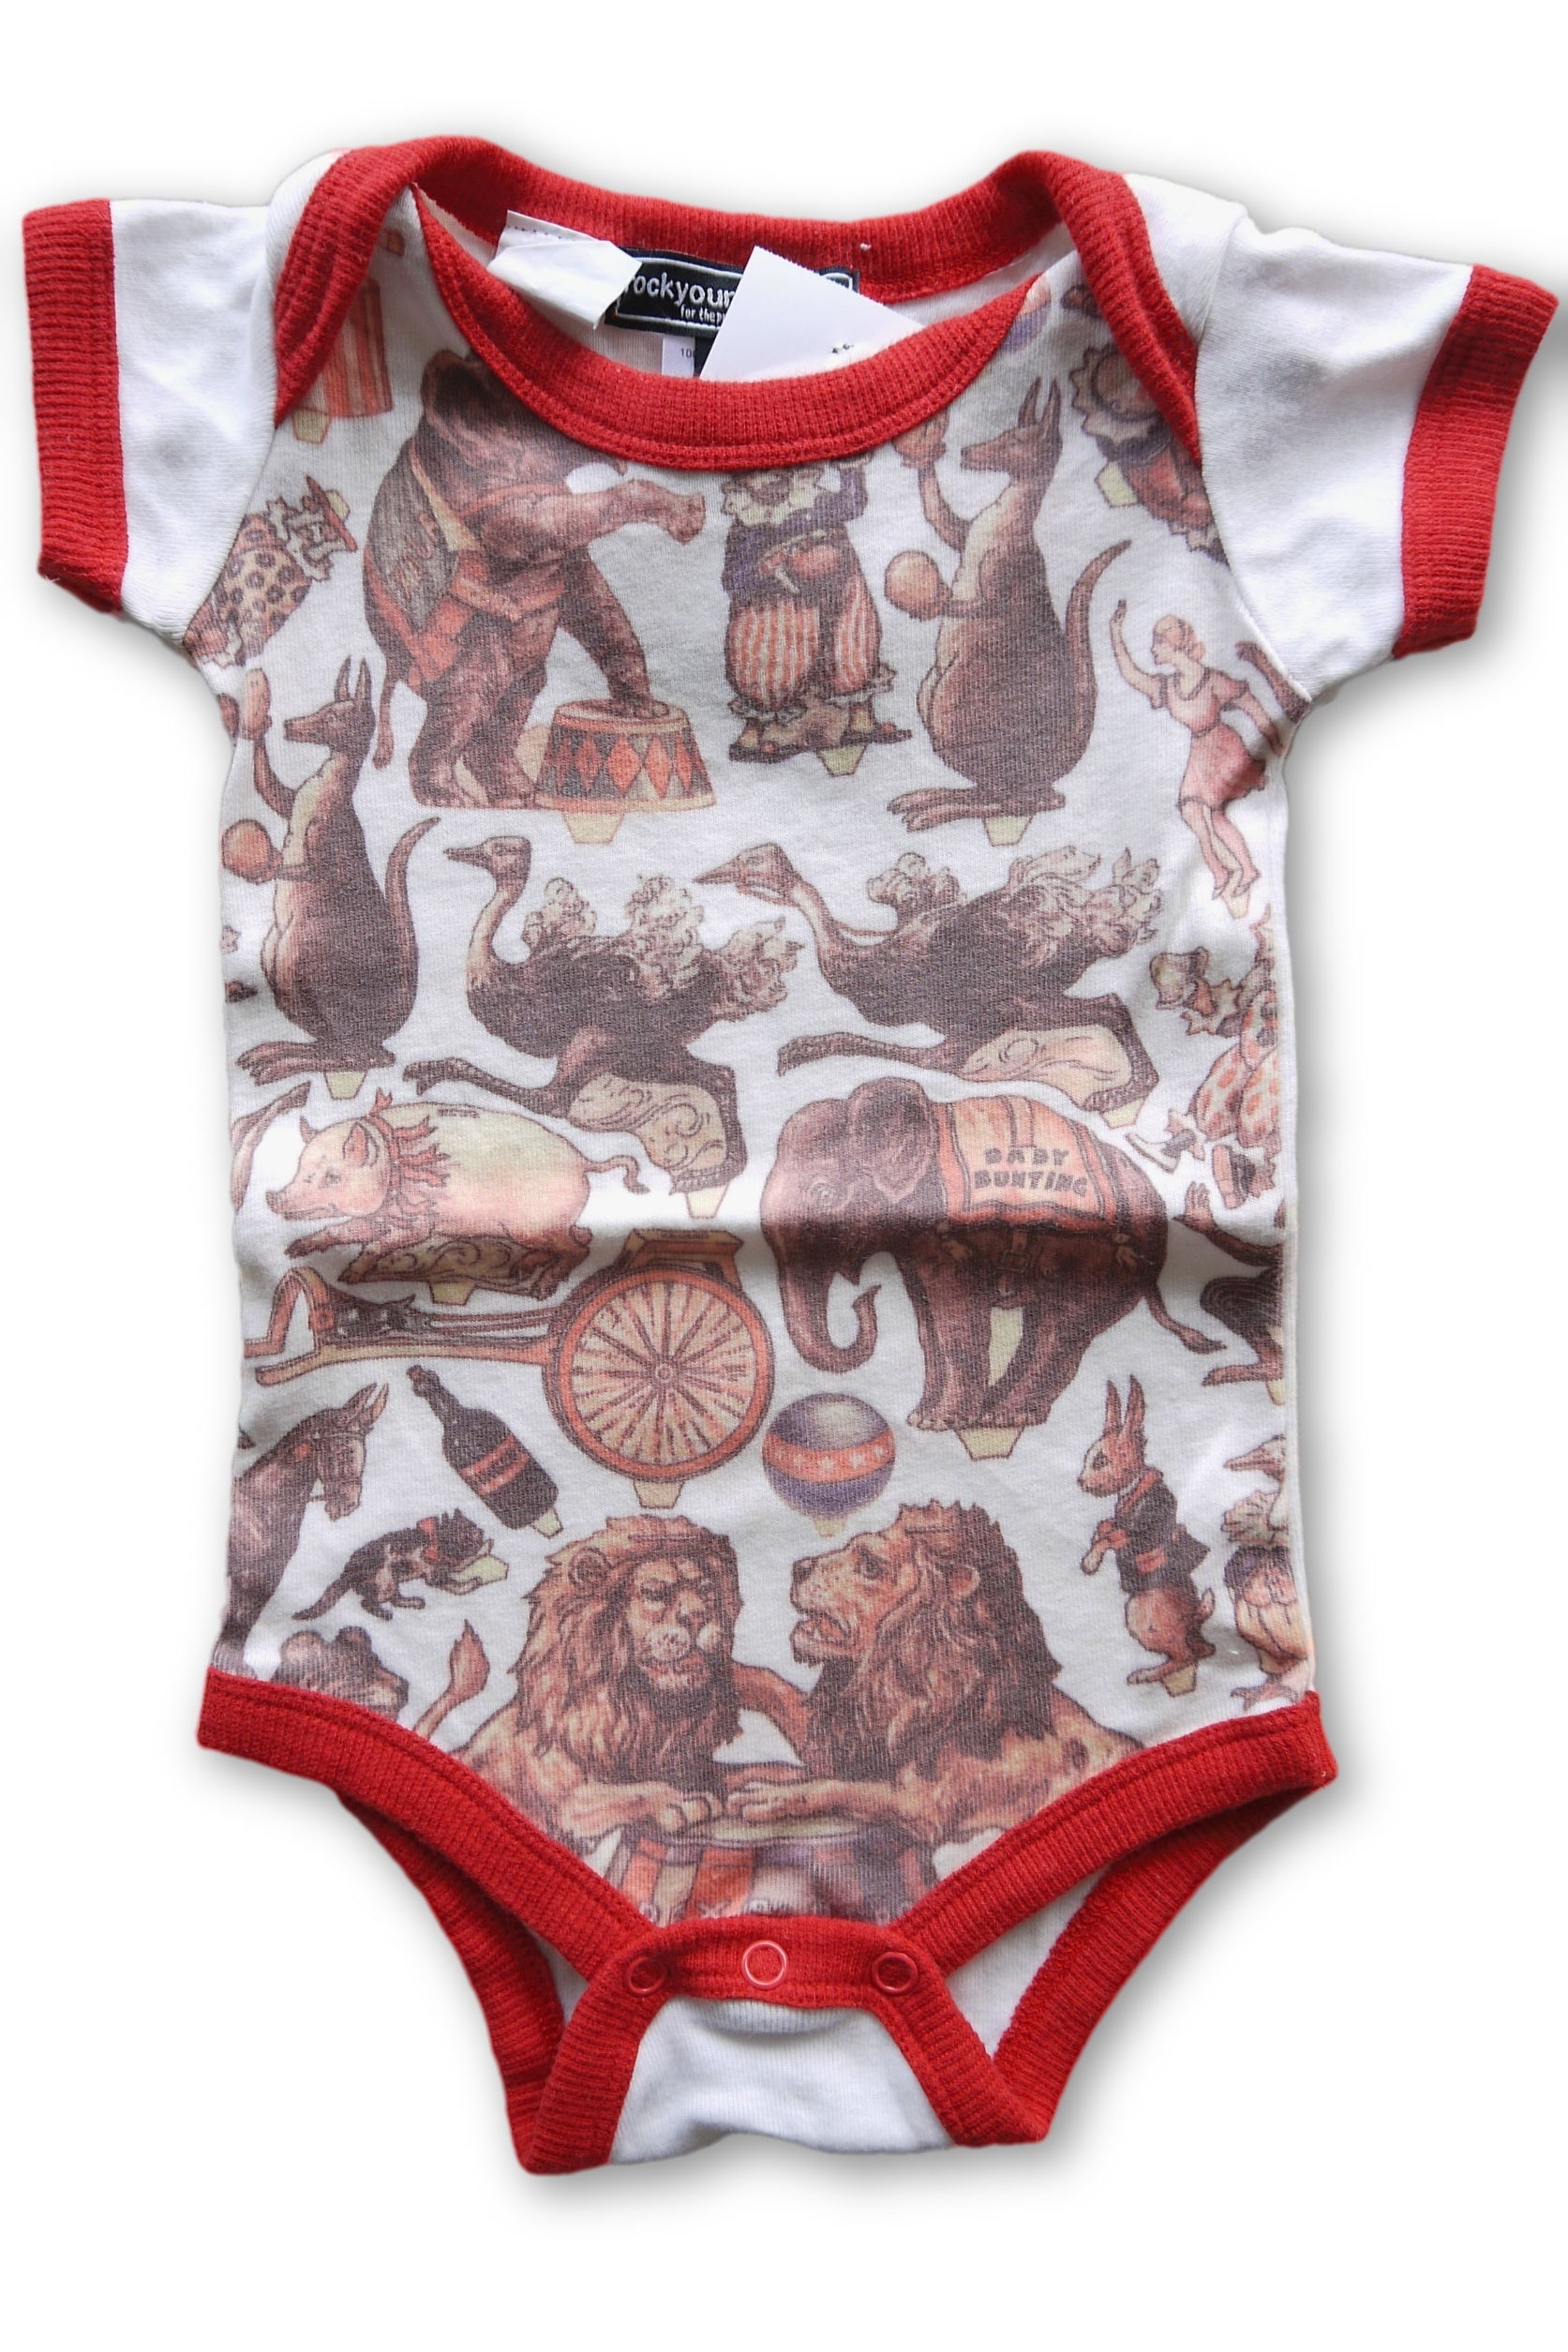 Rock Your Baby Bodysuit size 00 - Use-Ta! Preloved Children's Wear Online